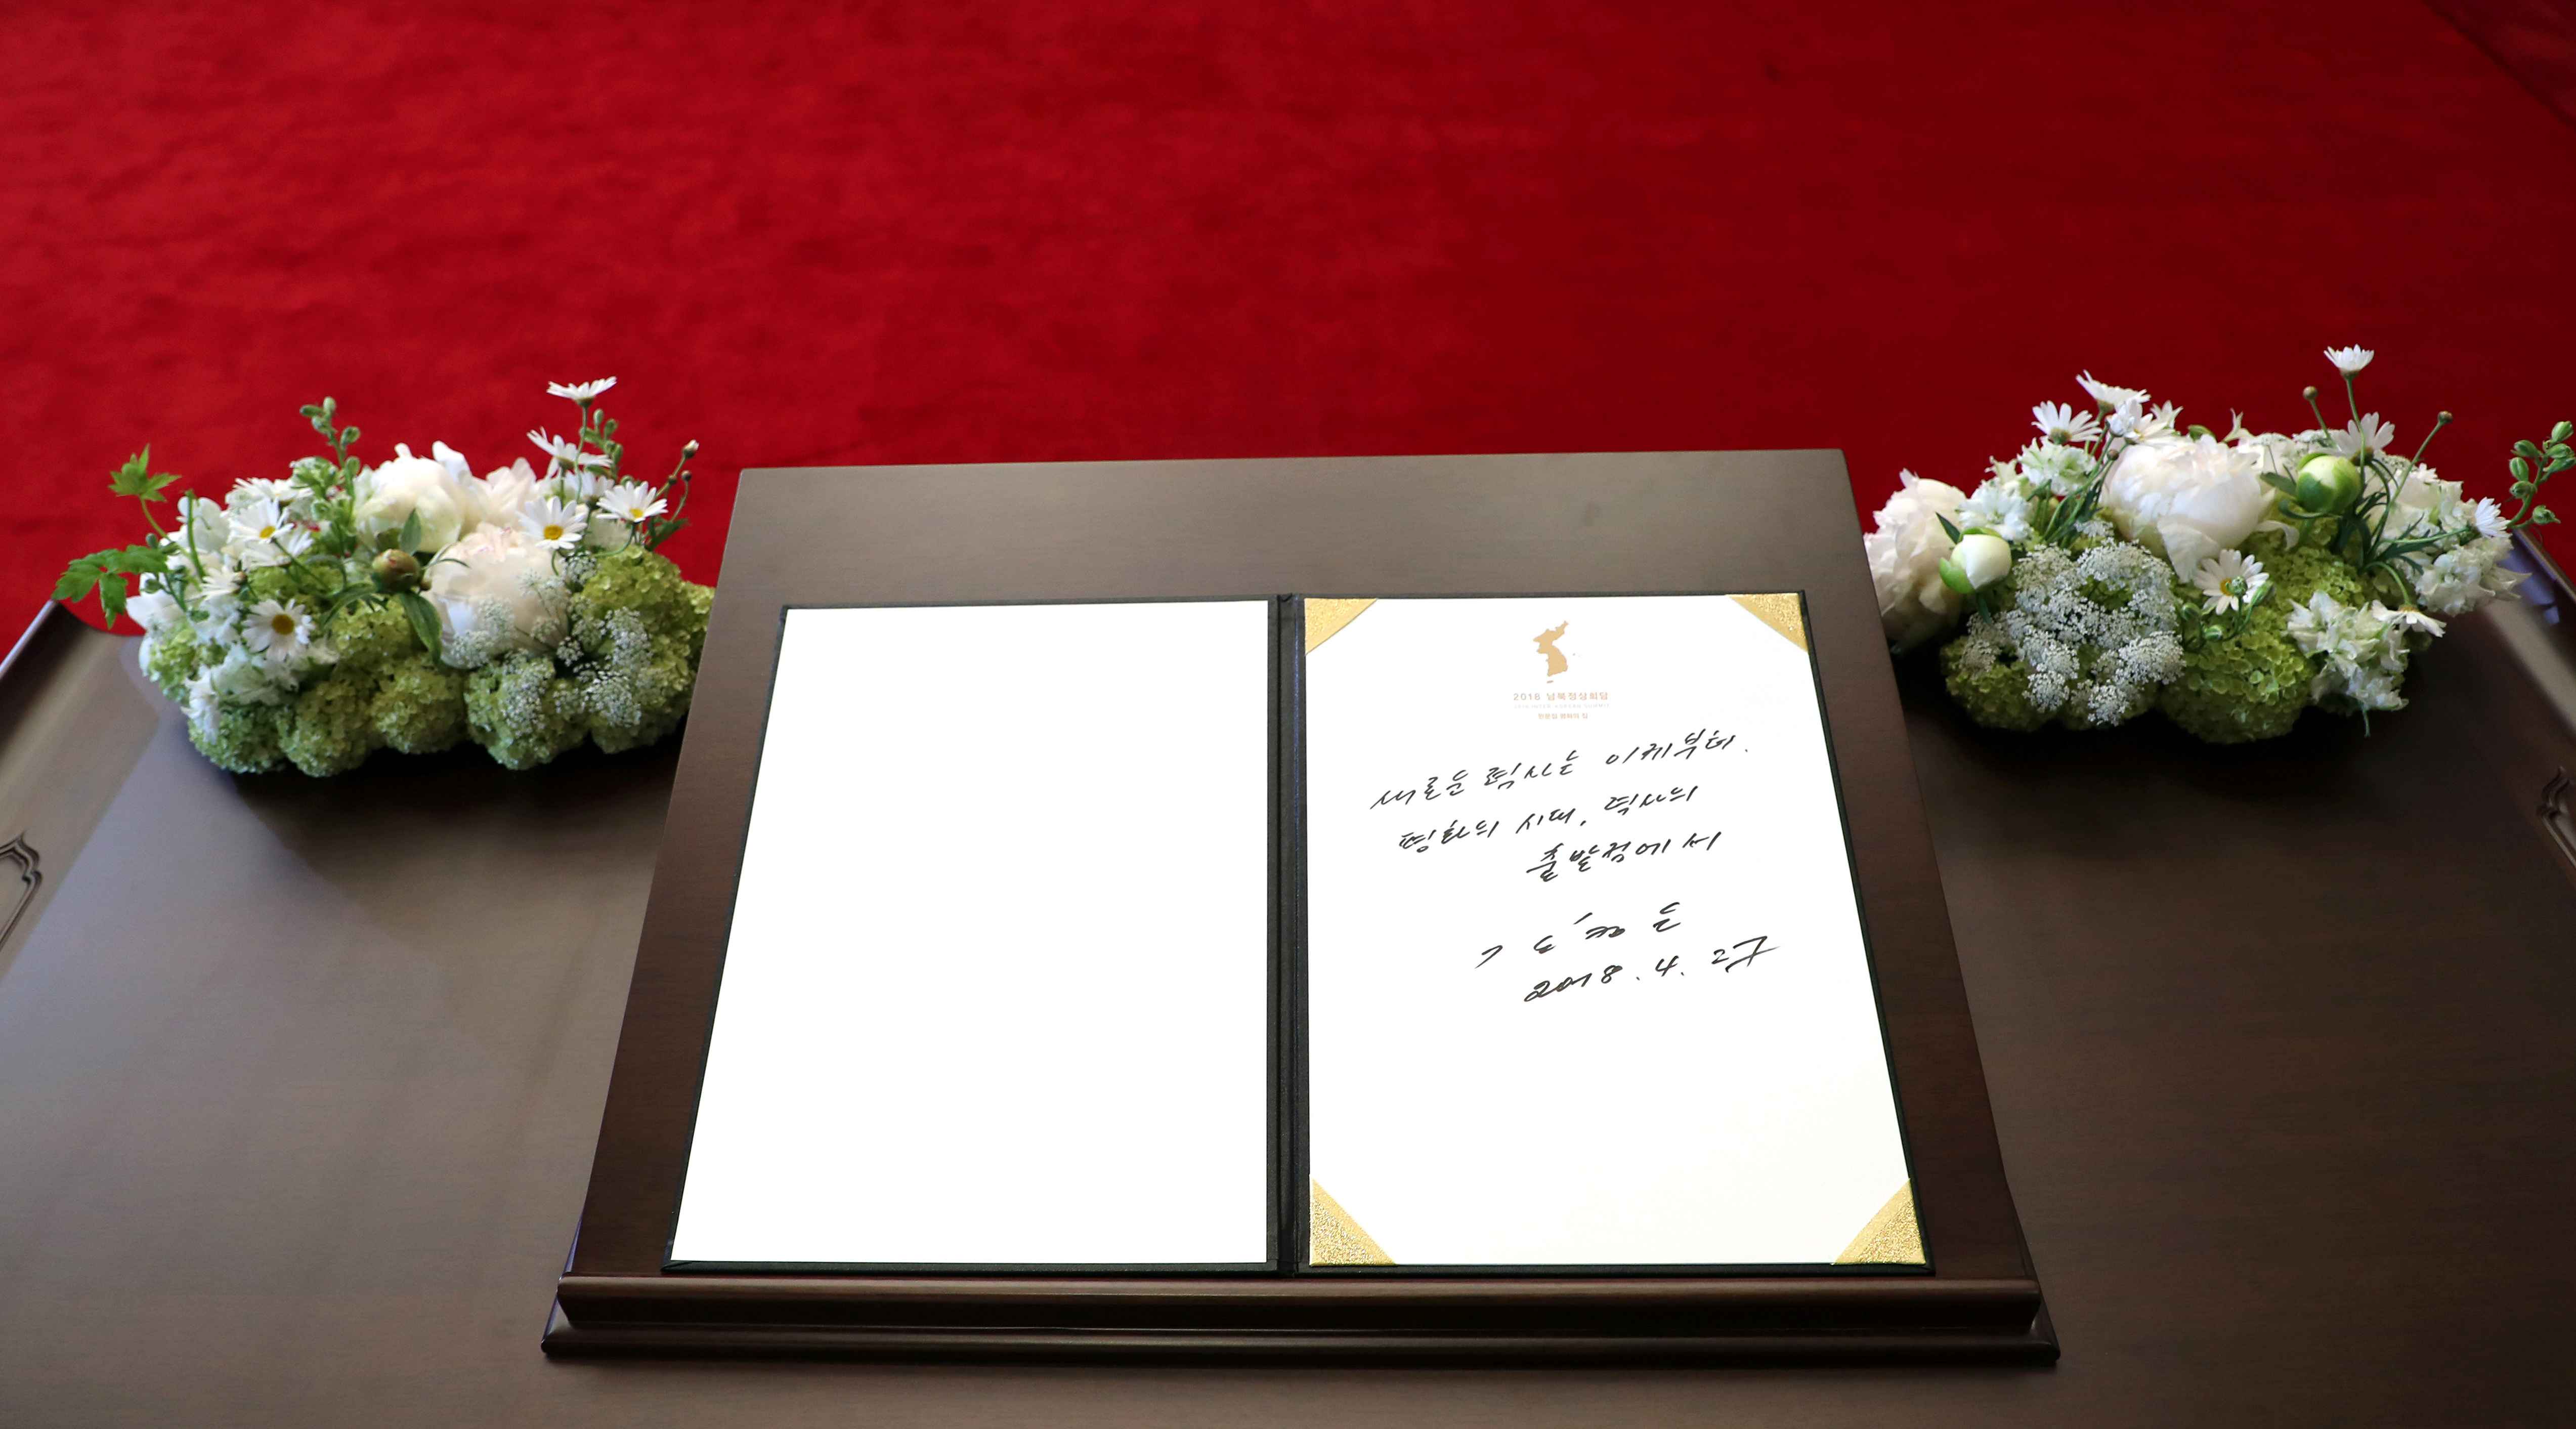 North Korean leader Kim Jong Un's entry in a guestbook at the Peace House in the demilitarized zone separating the two Koreas, South Korea, April 27, 2018. The writing reads  A new history starts now. An age of peace, from the starting point of history.